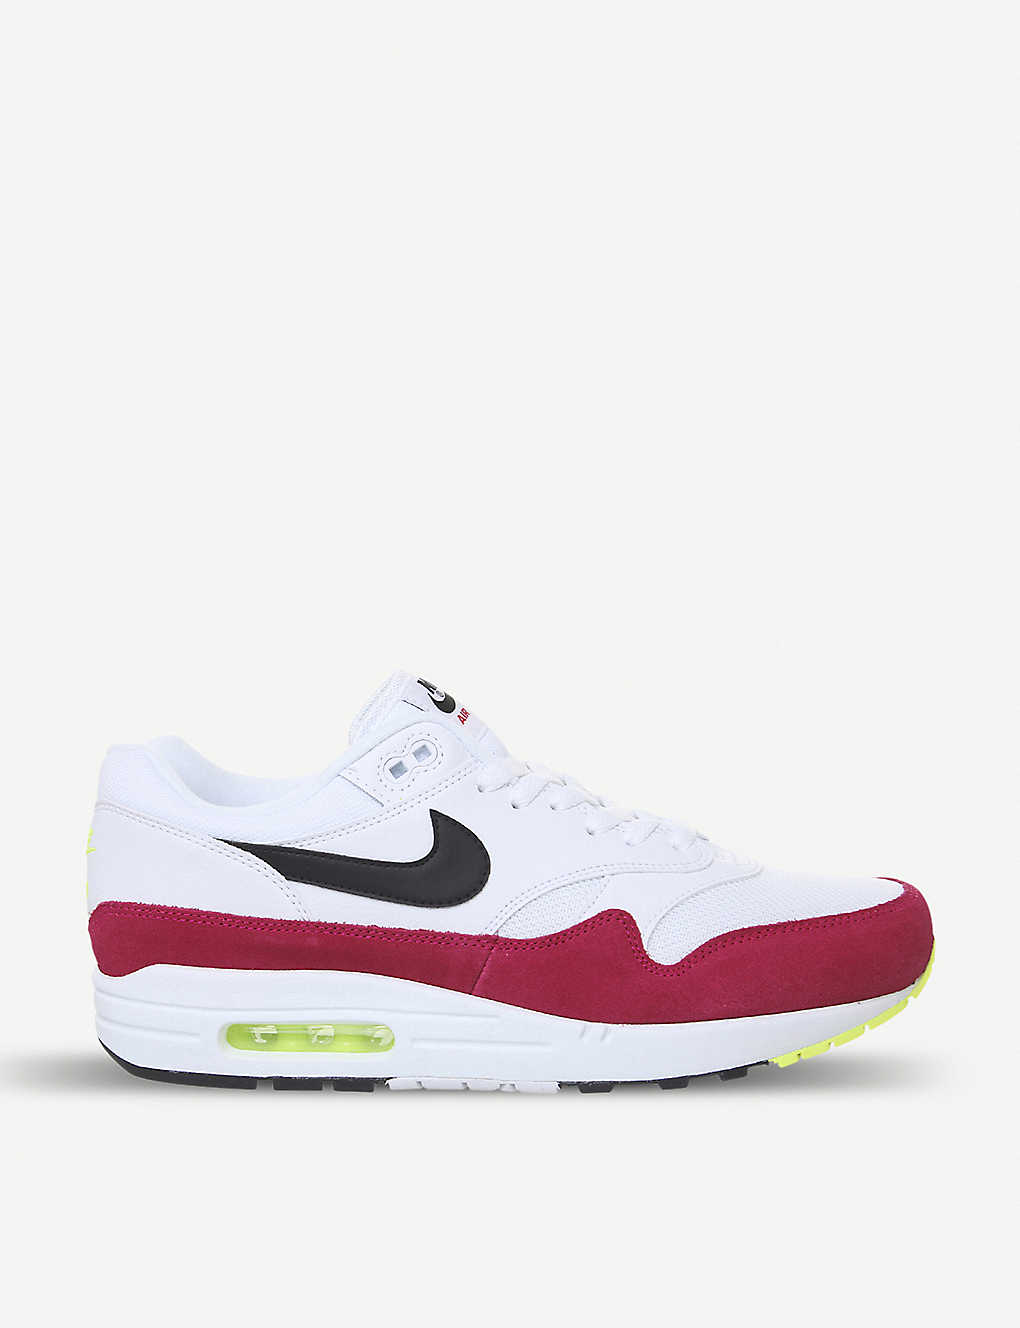 finest selection 5c28a 0e7fc Air Max 1 leather trainers - White black pink ...